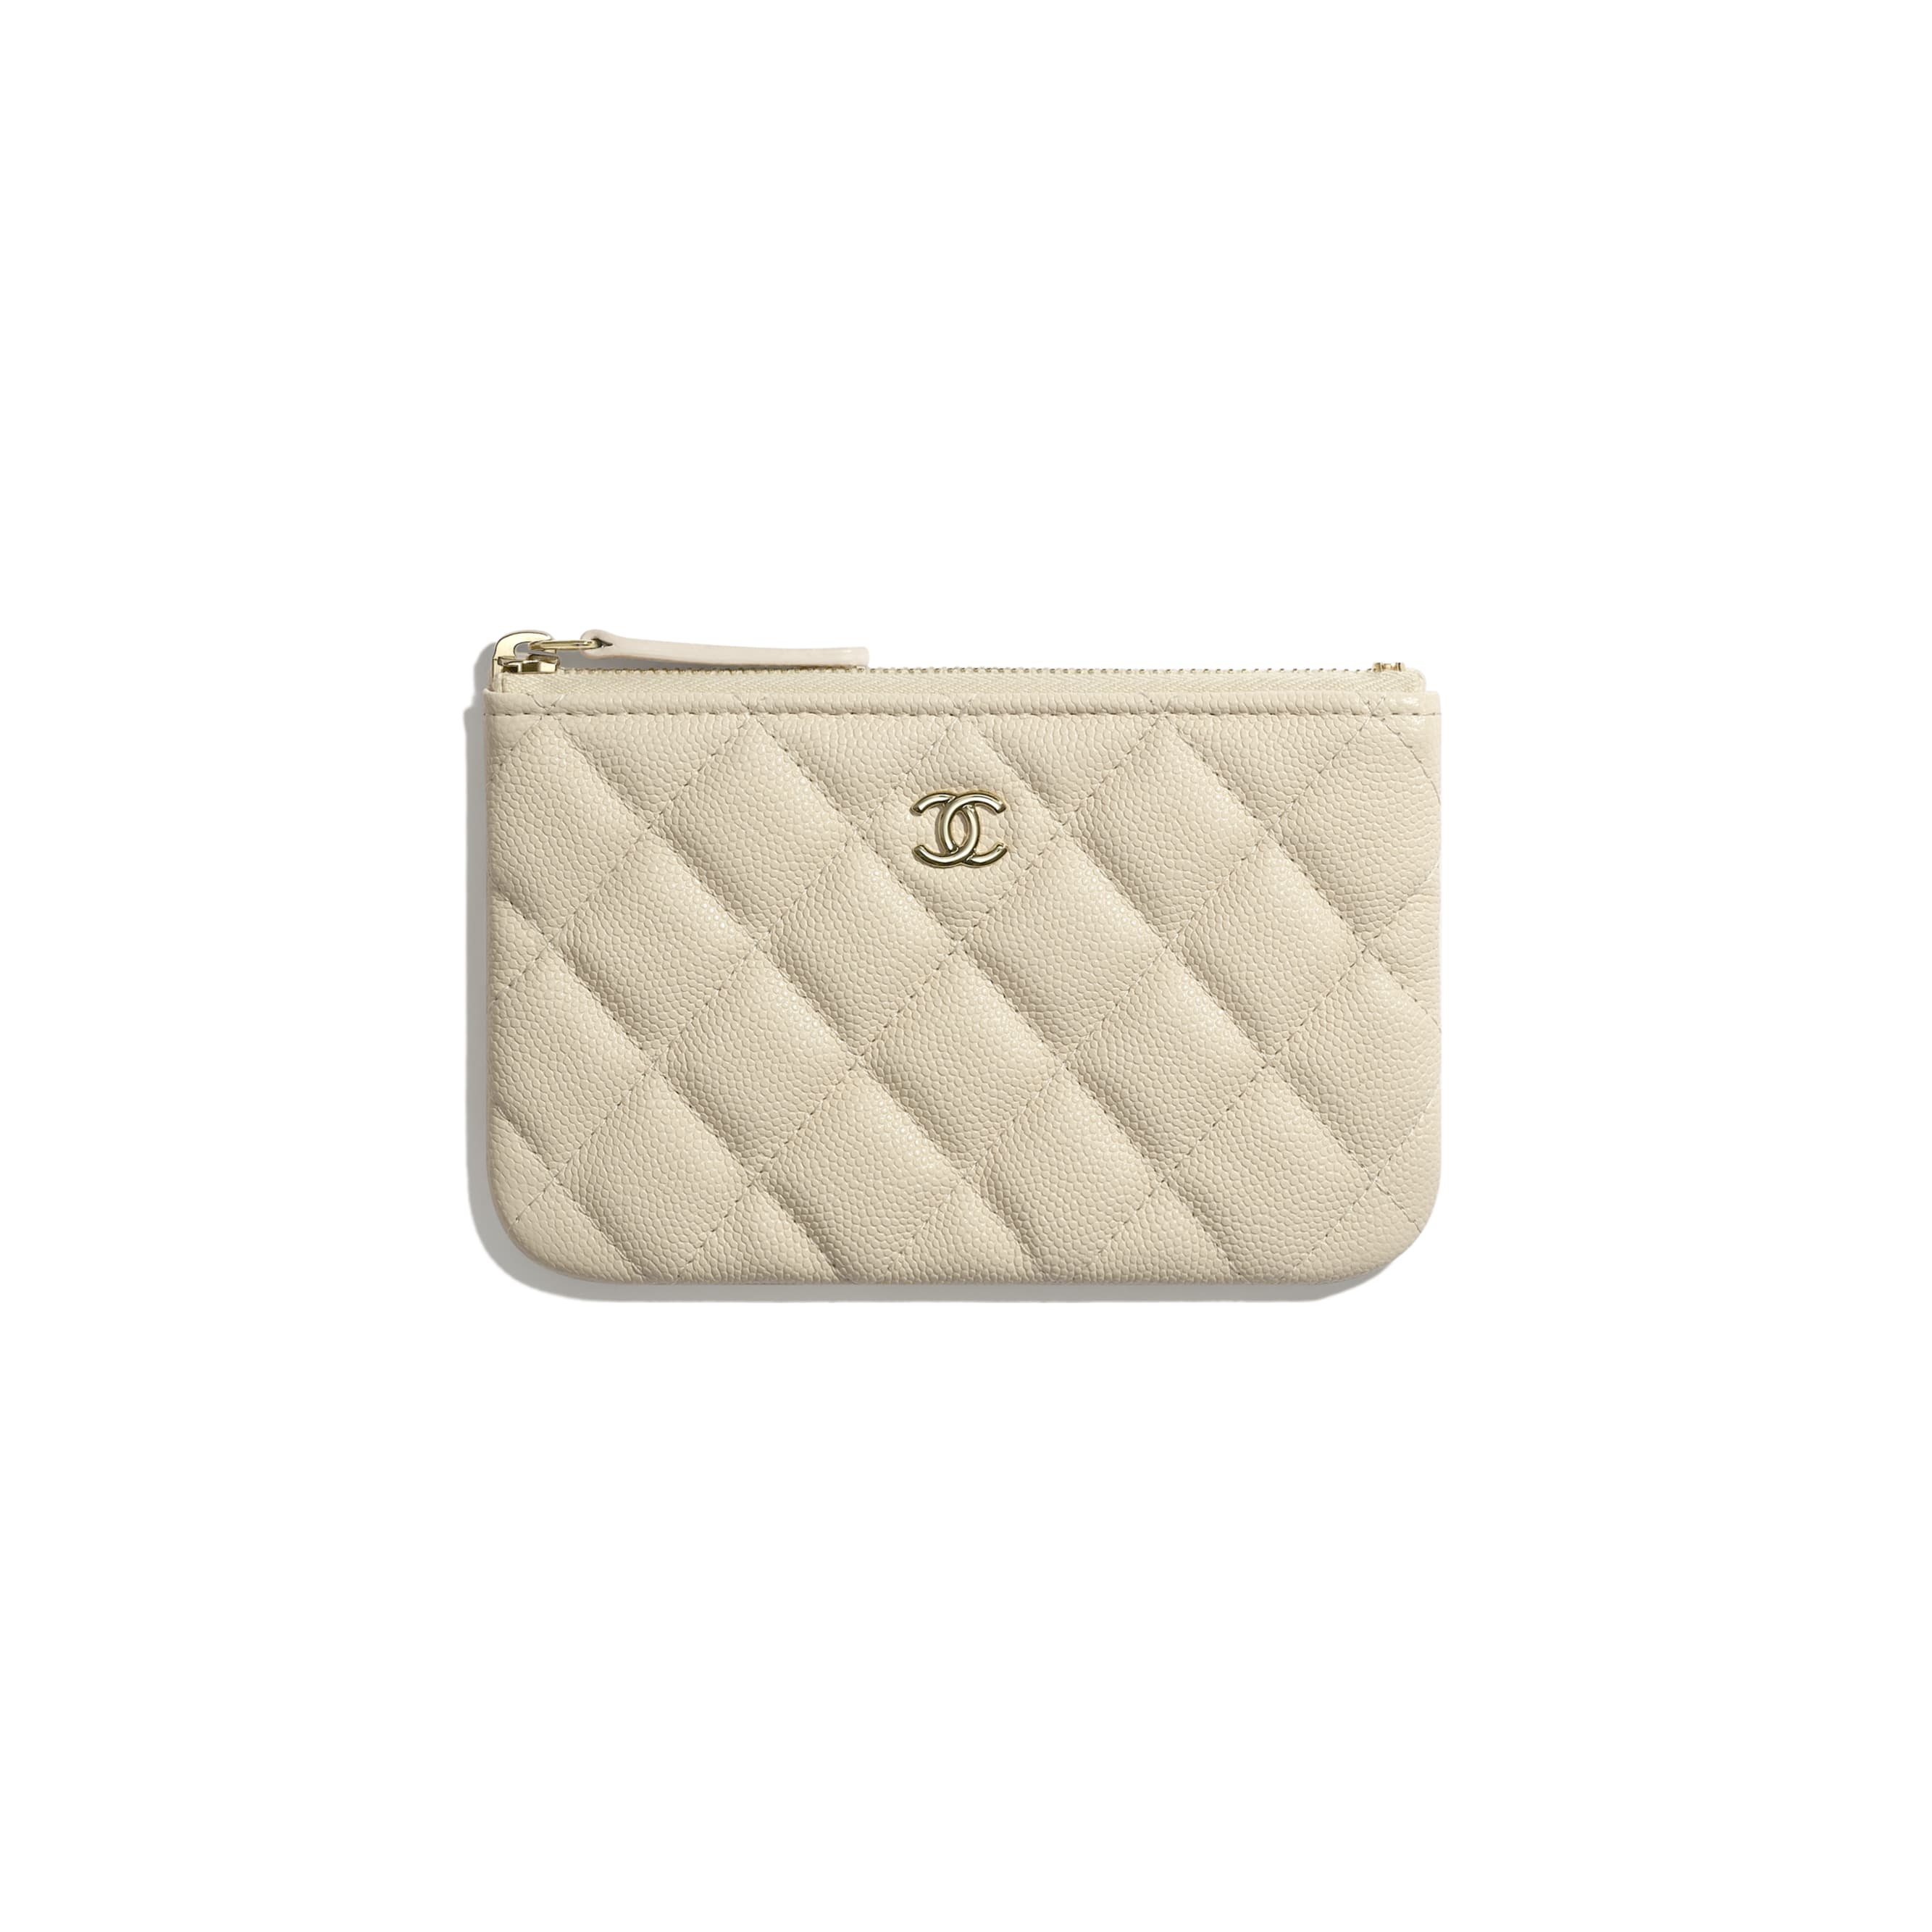 Classic Mini Pouch - Light Beige - Grained Calfskin & Gold-Tone Metal - CHANEL - Default view - see standard sized version